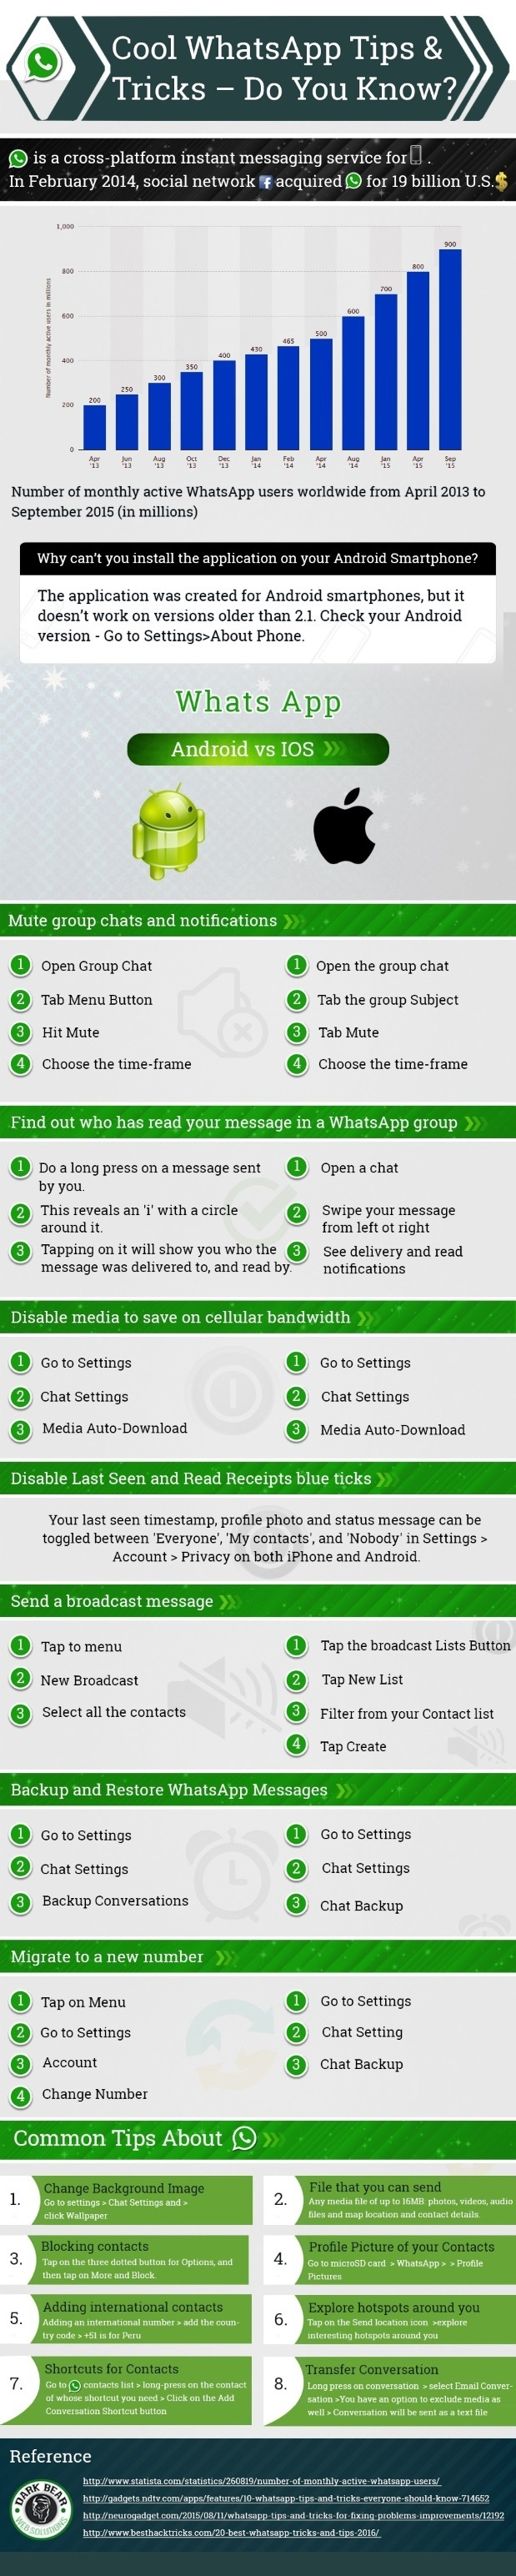 INFOGRAPHIC: WhatsApp tips and tricks